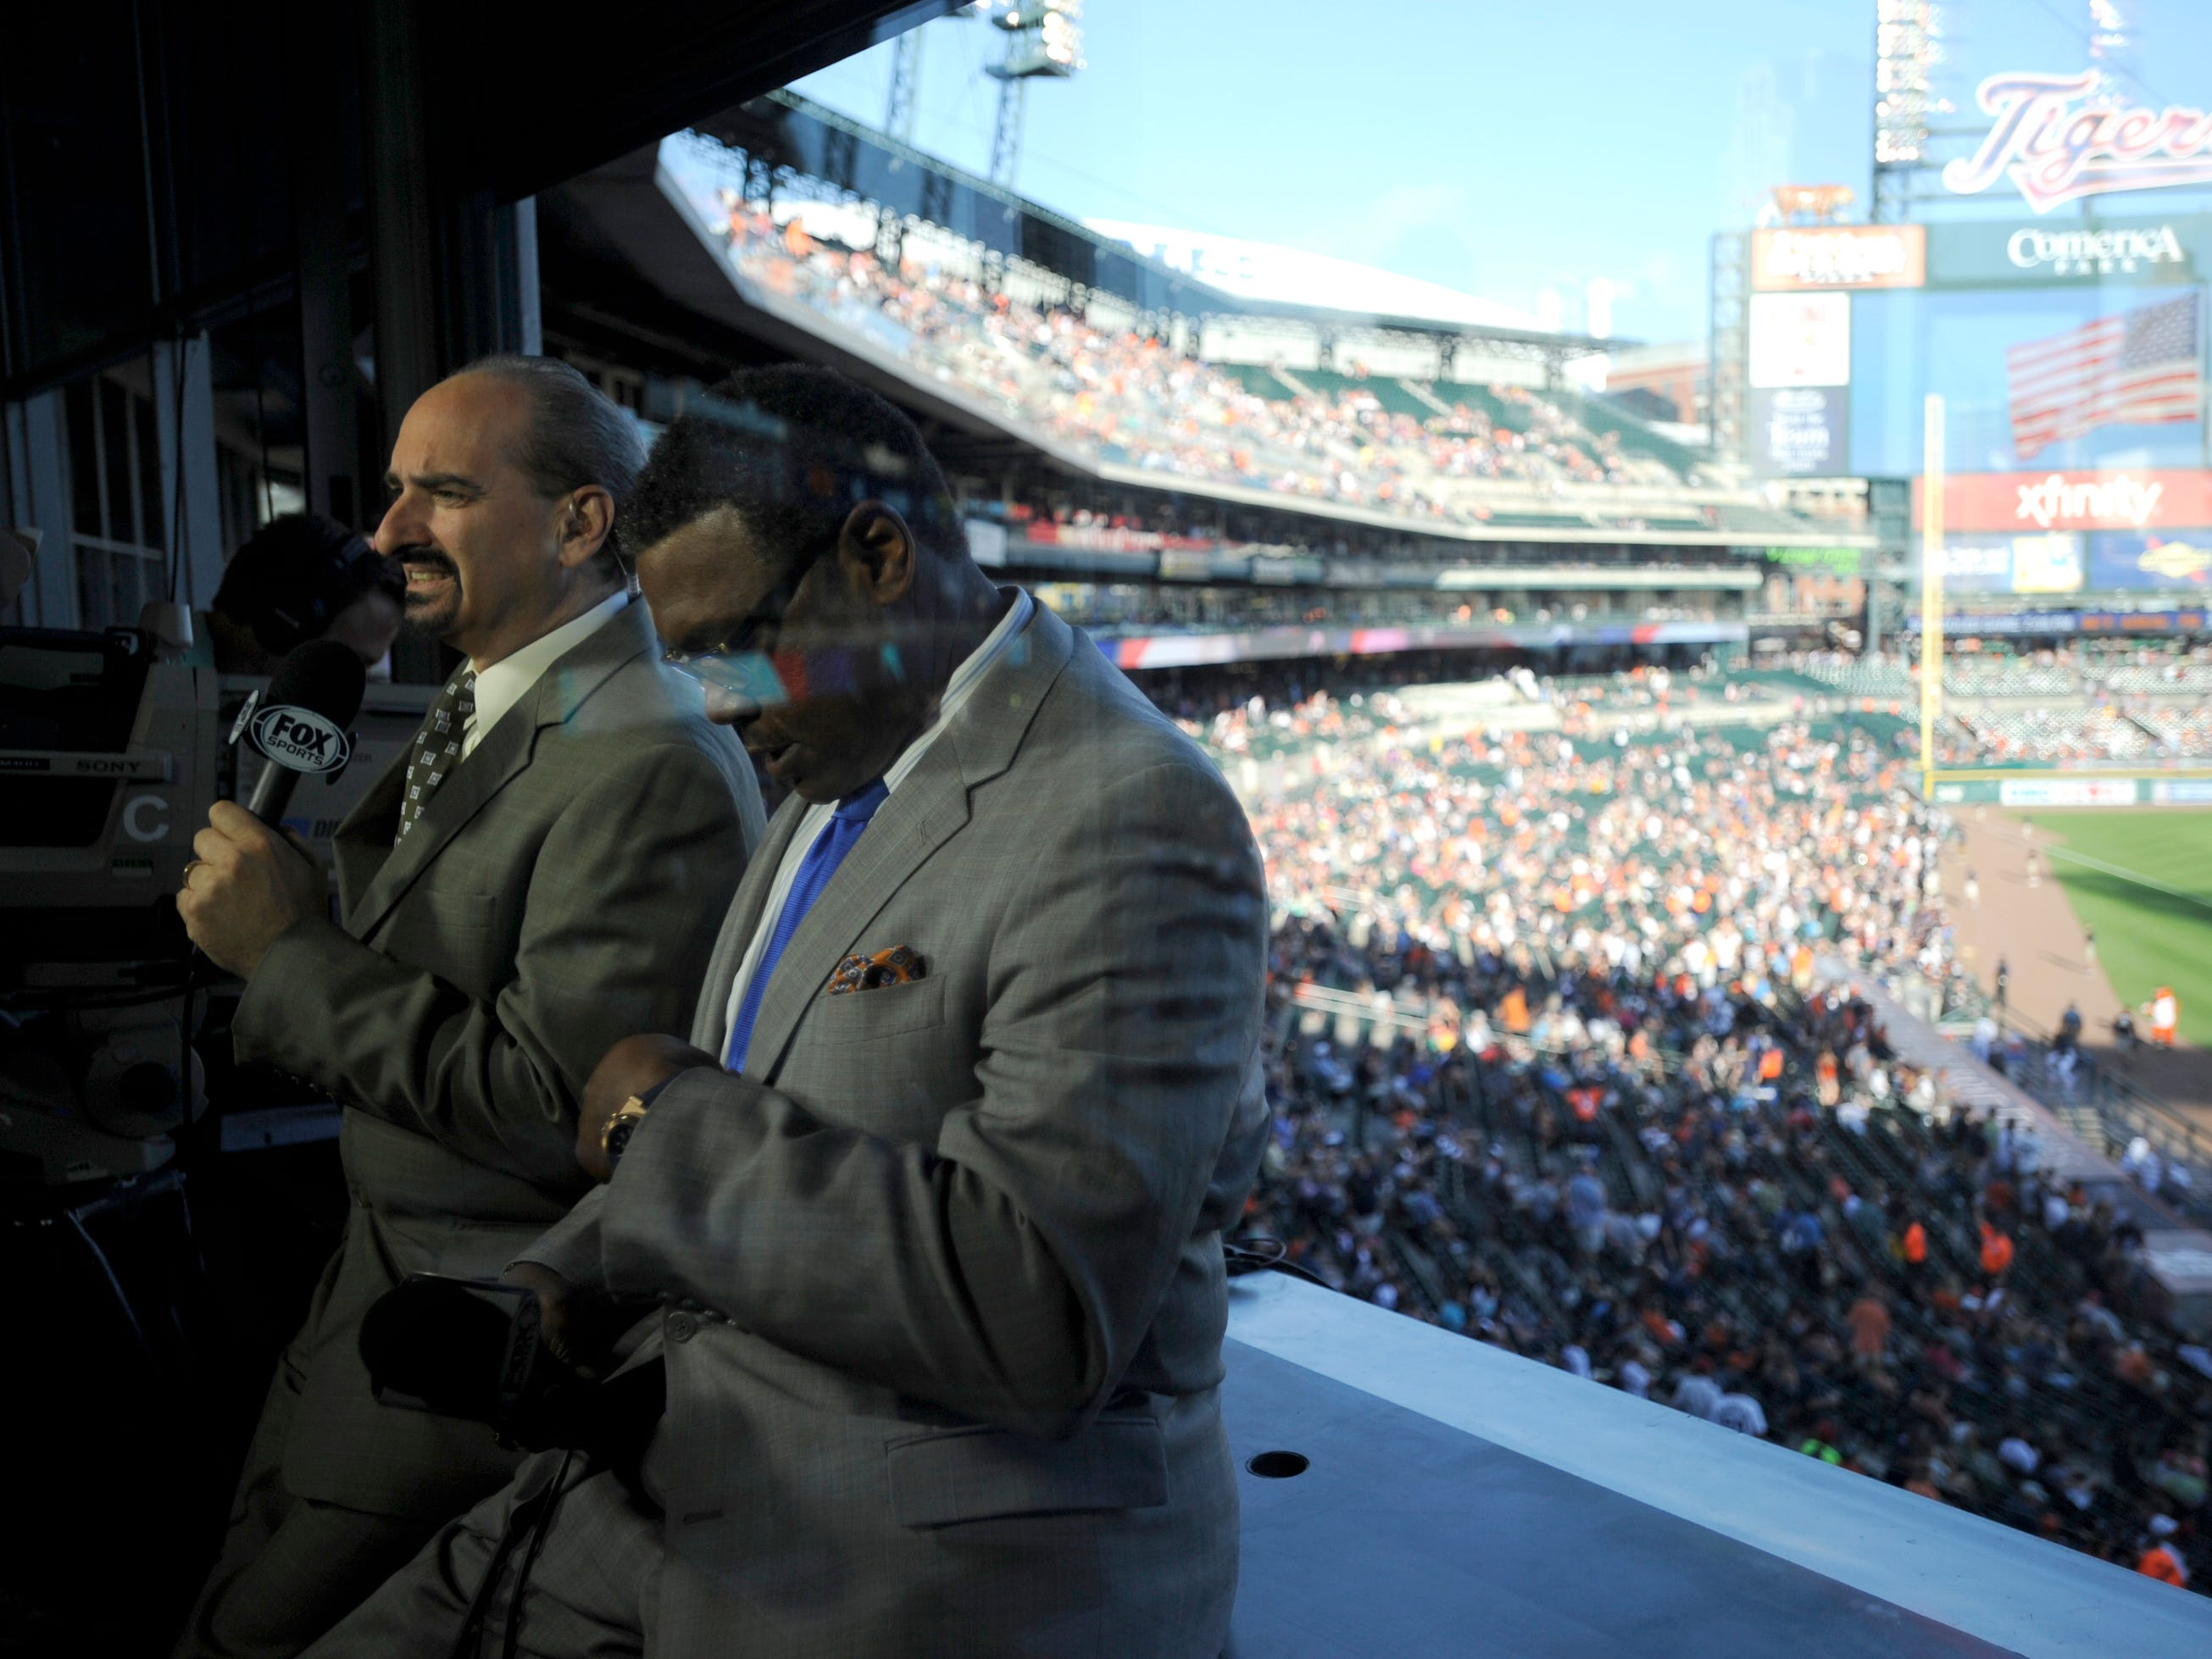 Mario Impemba and Rod Allen would go on to work 16 years together, including from 2003-14 as the lone members of the Fox Sports Detroit team.